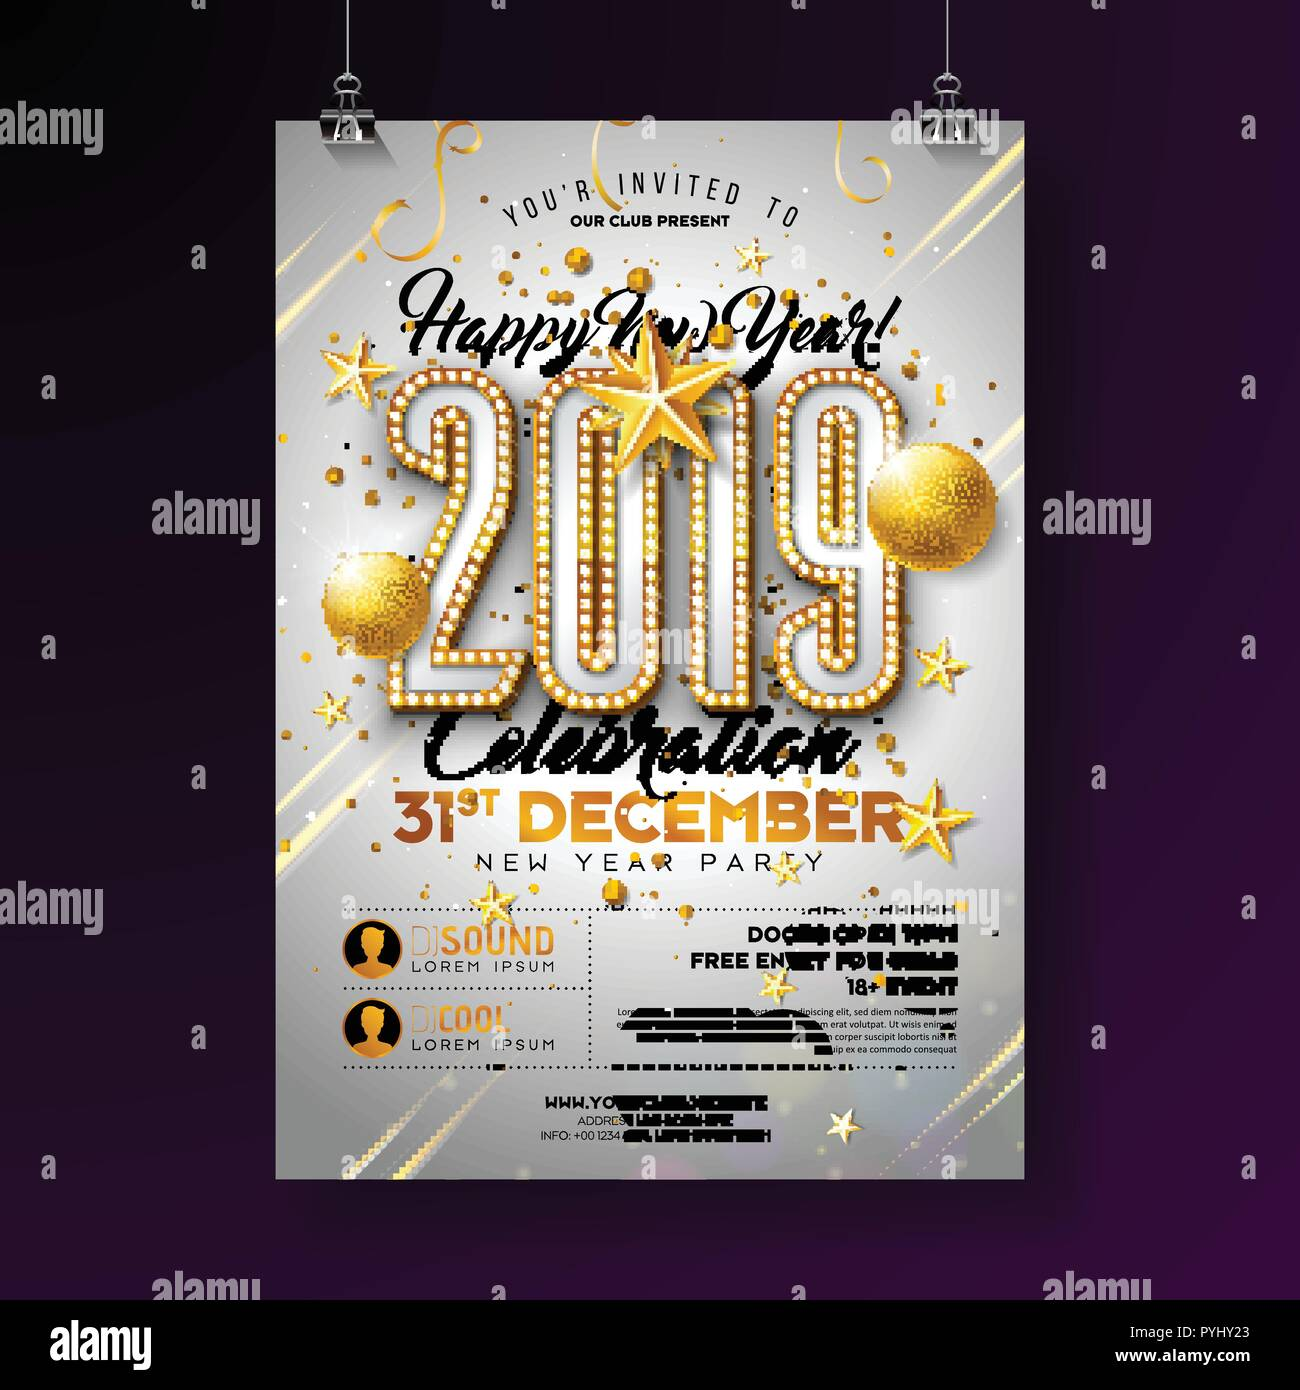 2019 new year party celebration poster template illustration with lights bulb number and gold christmas ball on white background vector holiday premium invitation flyer or promo banner stock vector image art https www alamy com 2019 new year party celebration poster template illustration with lights bulb number and gold christmas ball on white background vector holiday premium invitation flyer or promo banner image223514539 html